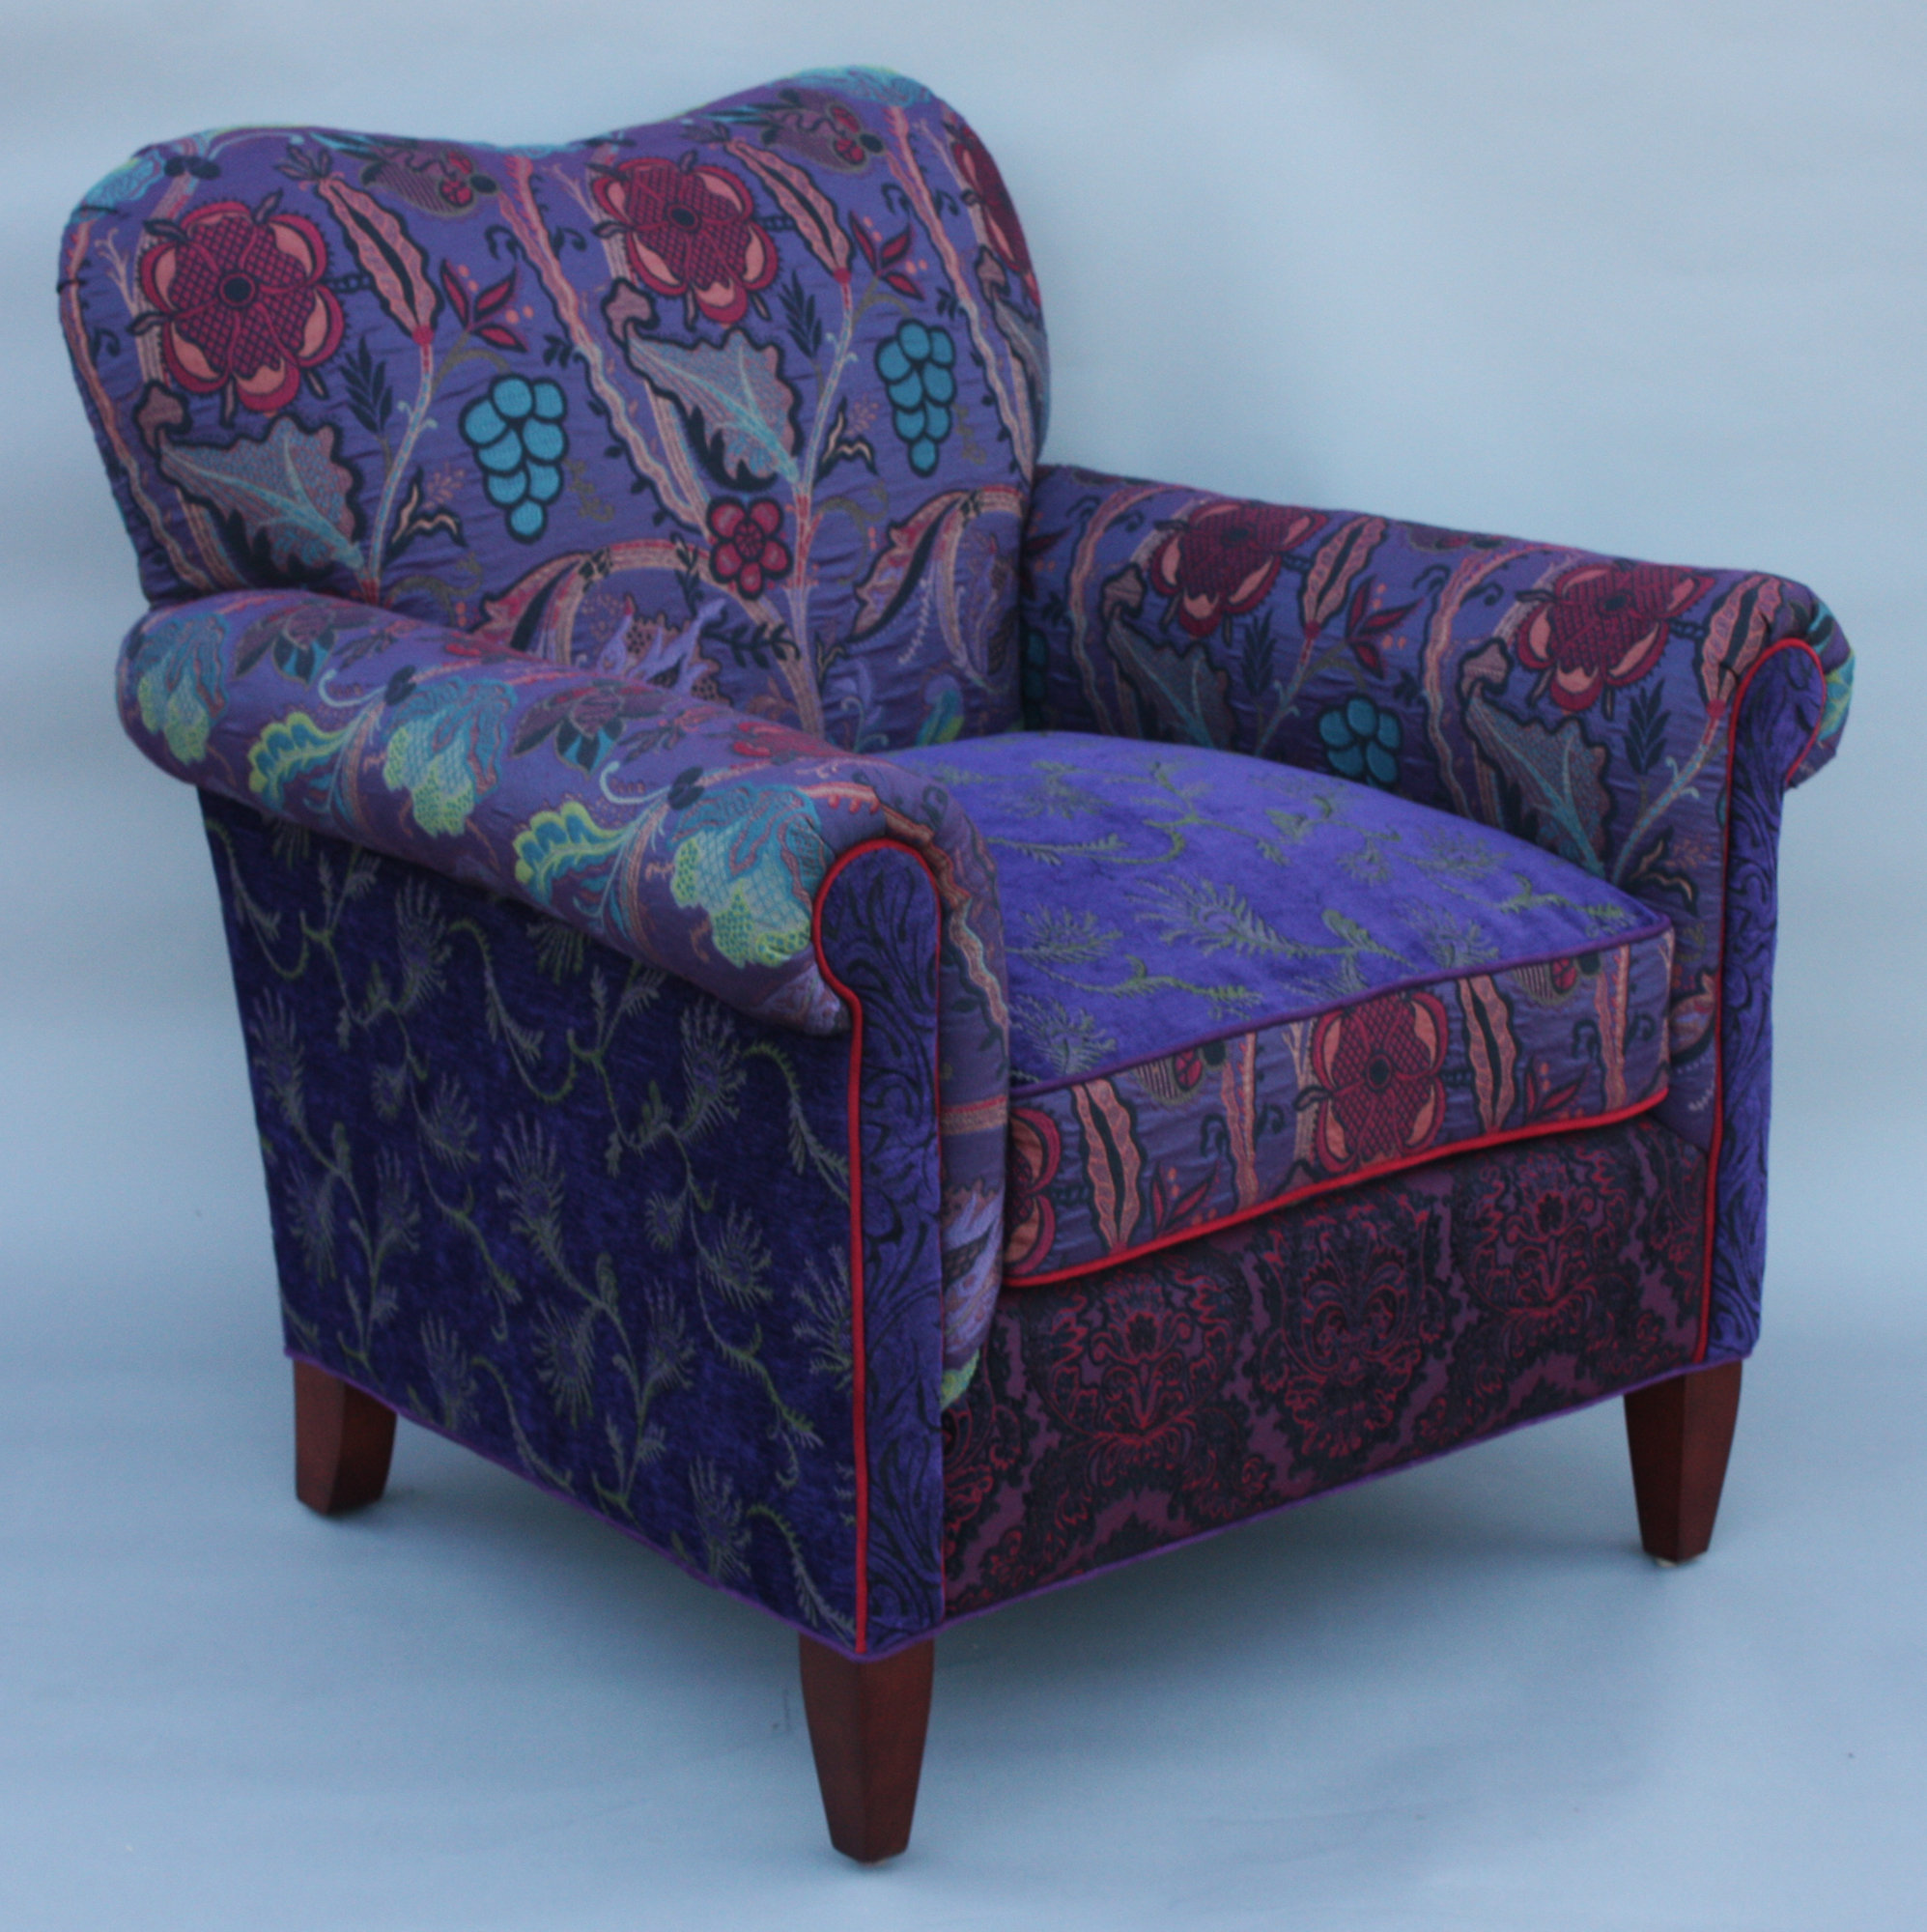 Molly Rose Chair In Concord By Mary Lynn O Shea